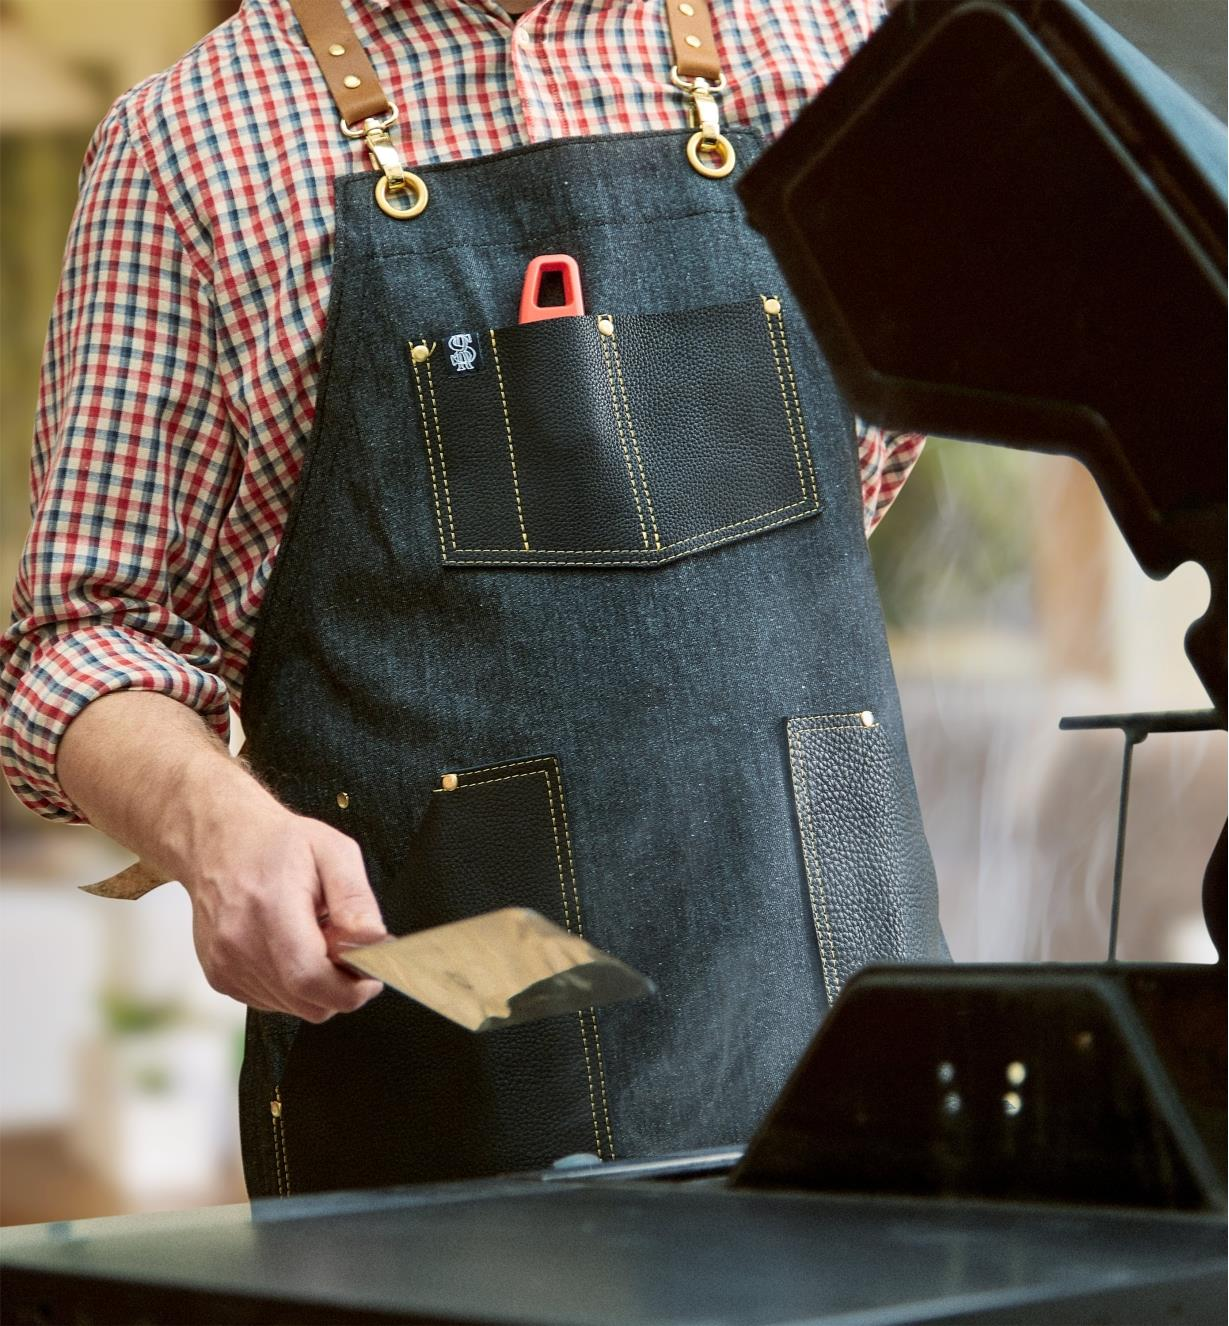 A man tending a barbecue in the All-Purpose Apron